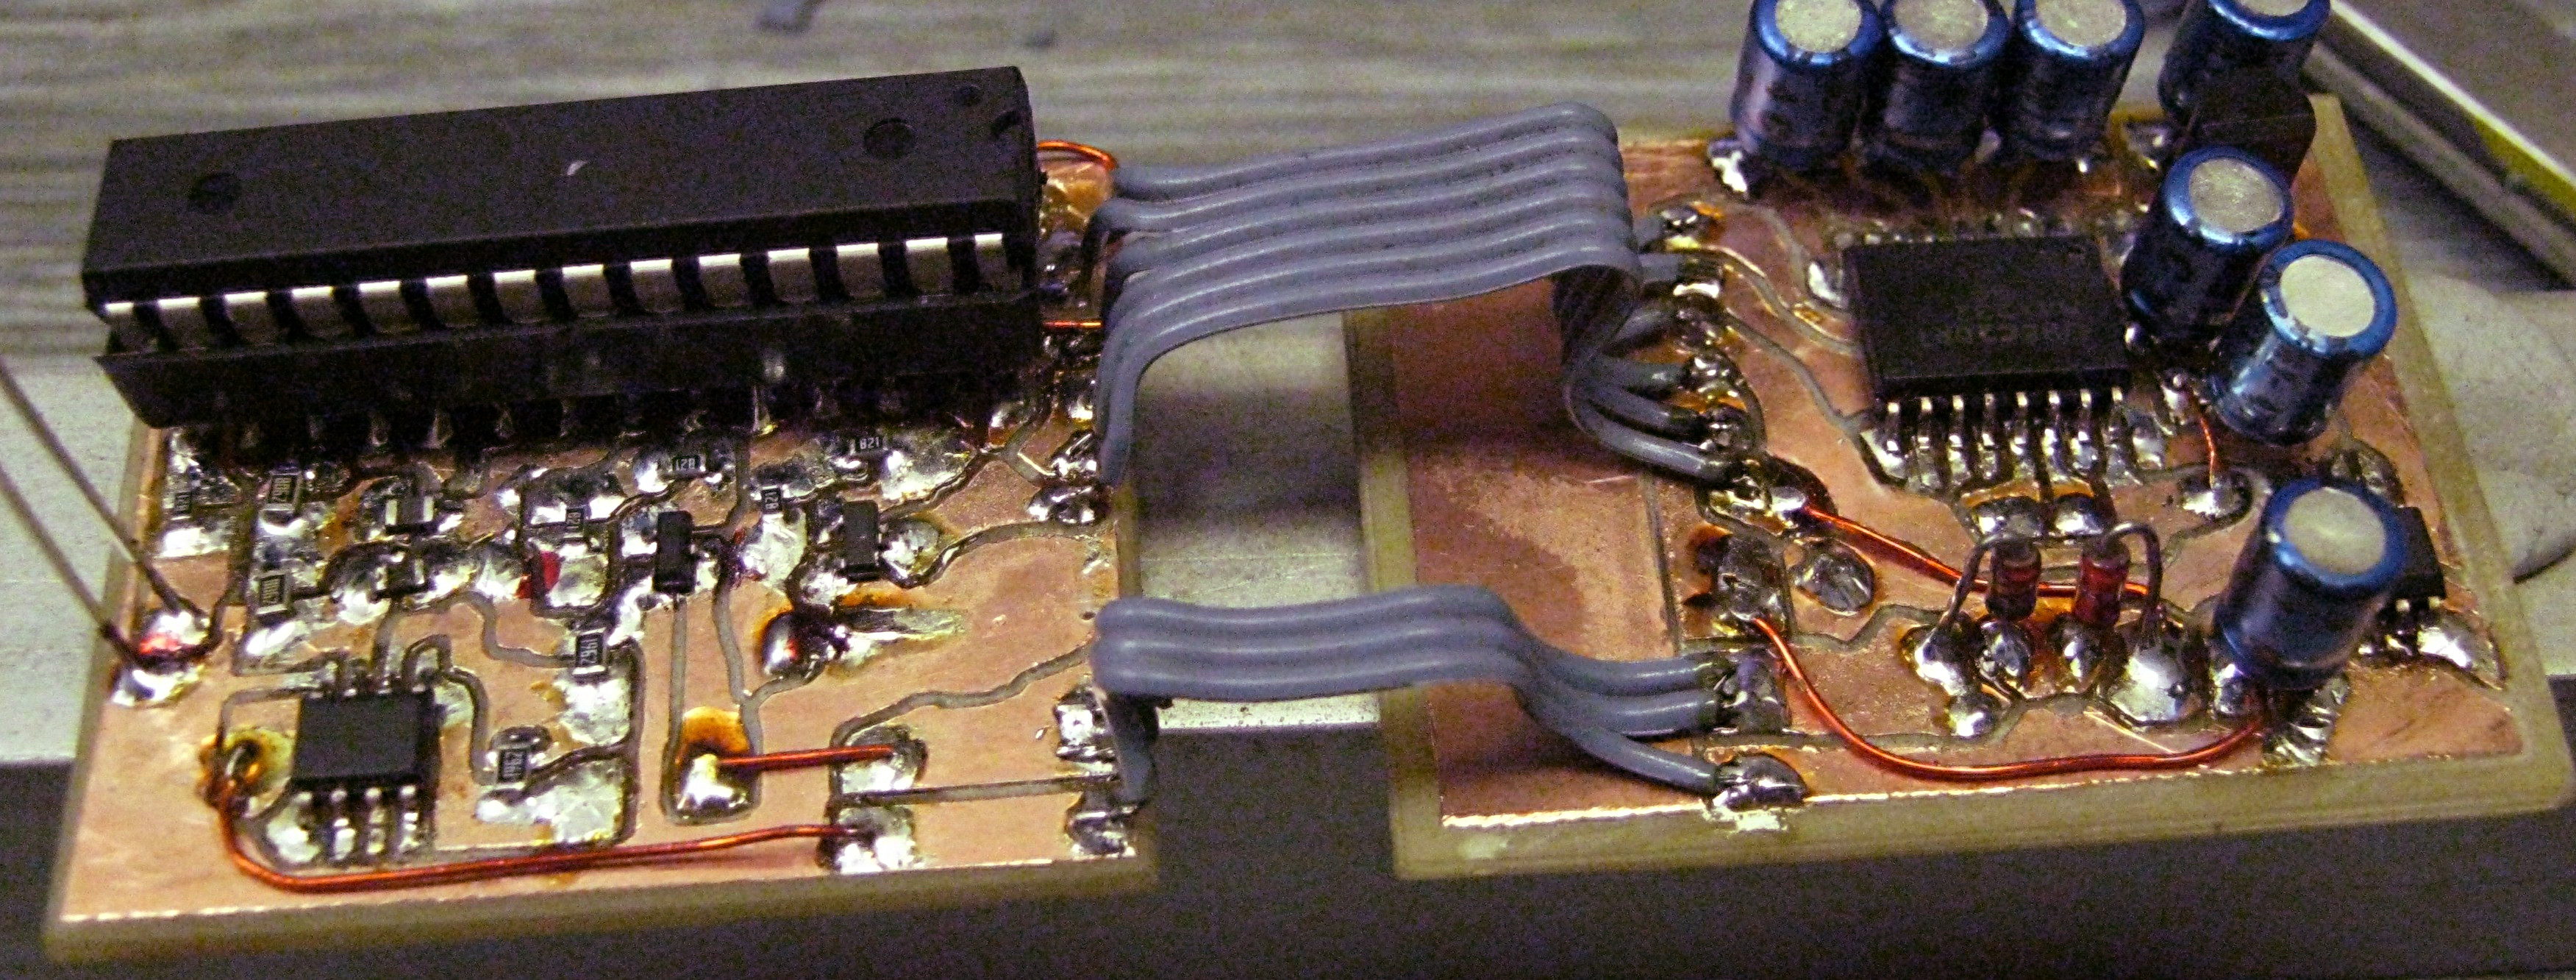 Fidocnc A Circuit Board Manufacturing Robot After Etching Process Examples Of Milled Circuits